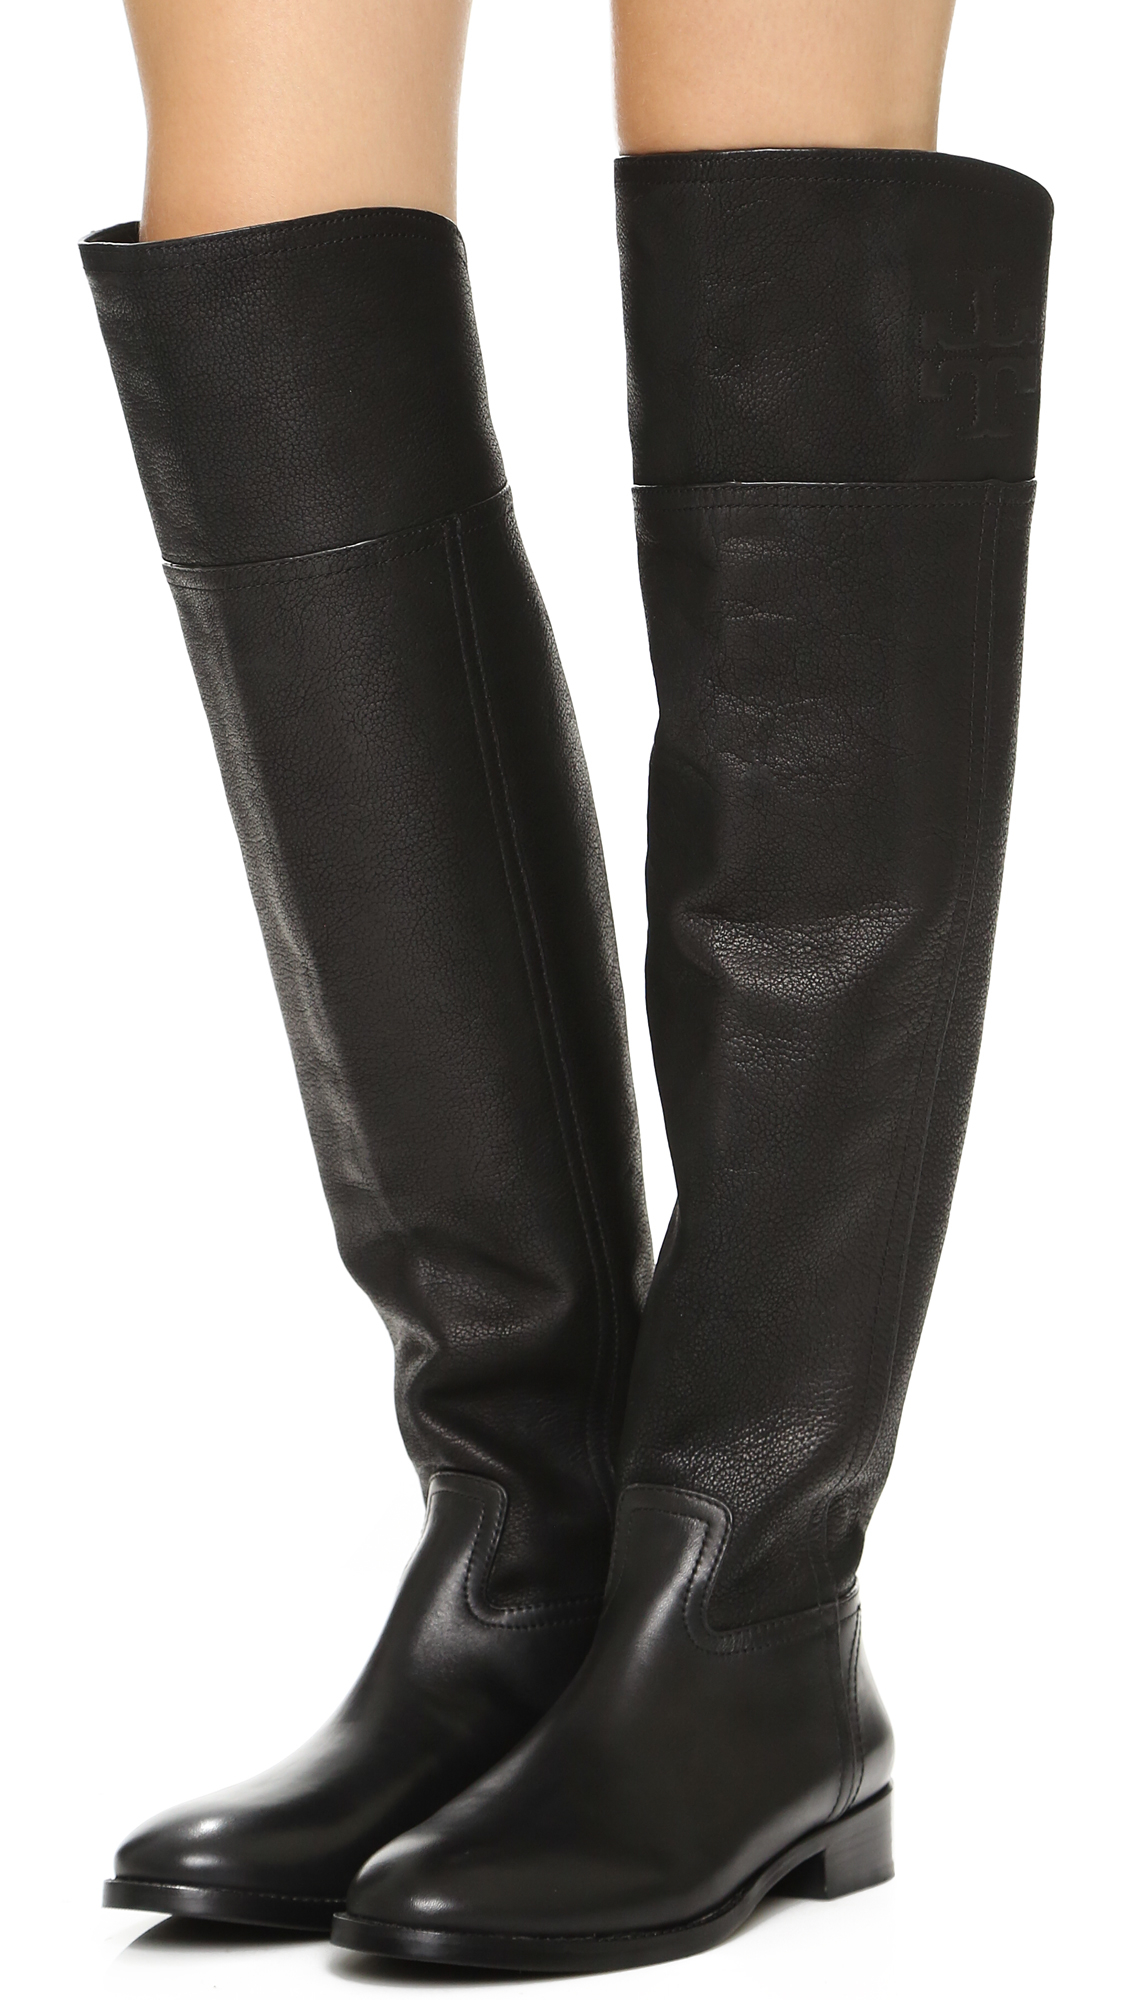 Lyst - Tory Burch Simone Over-The-Knee Boots in Black